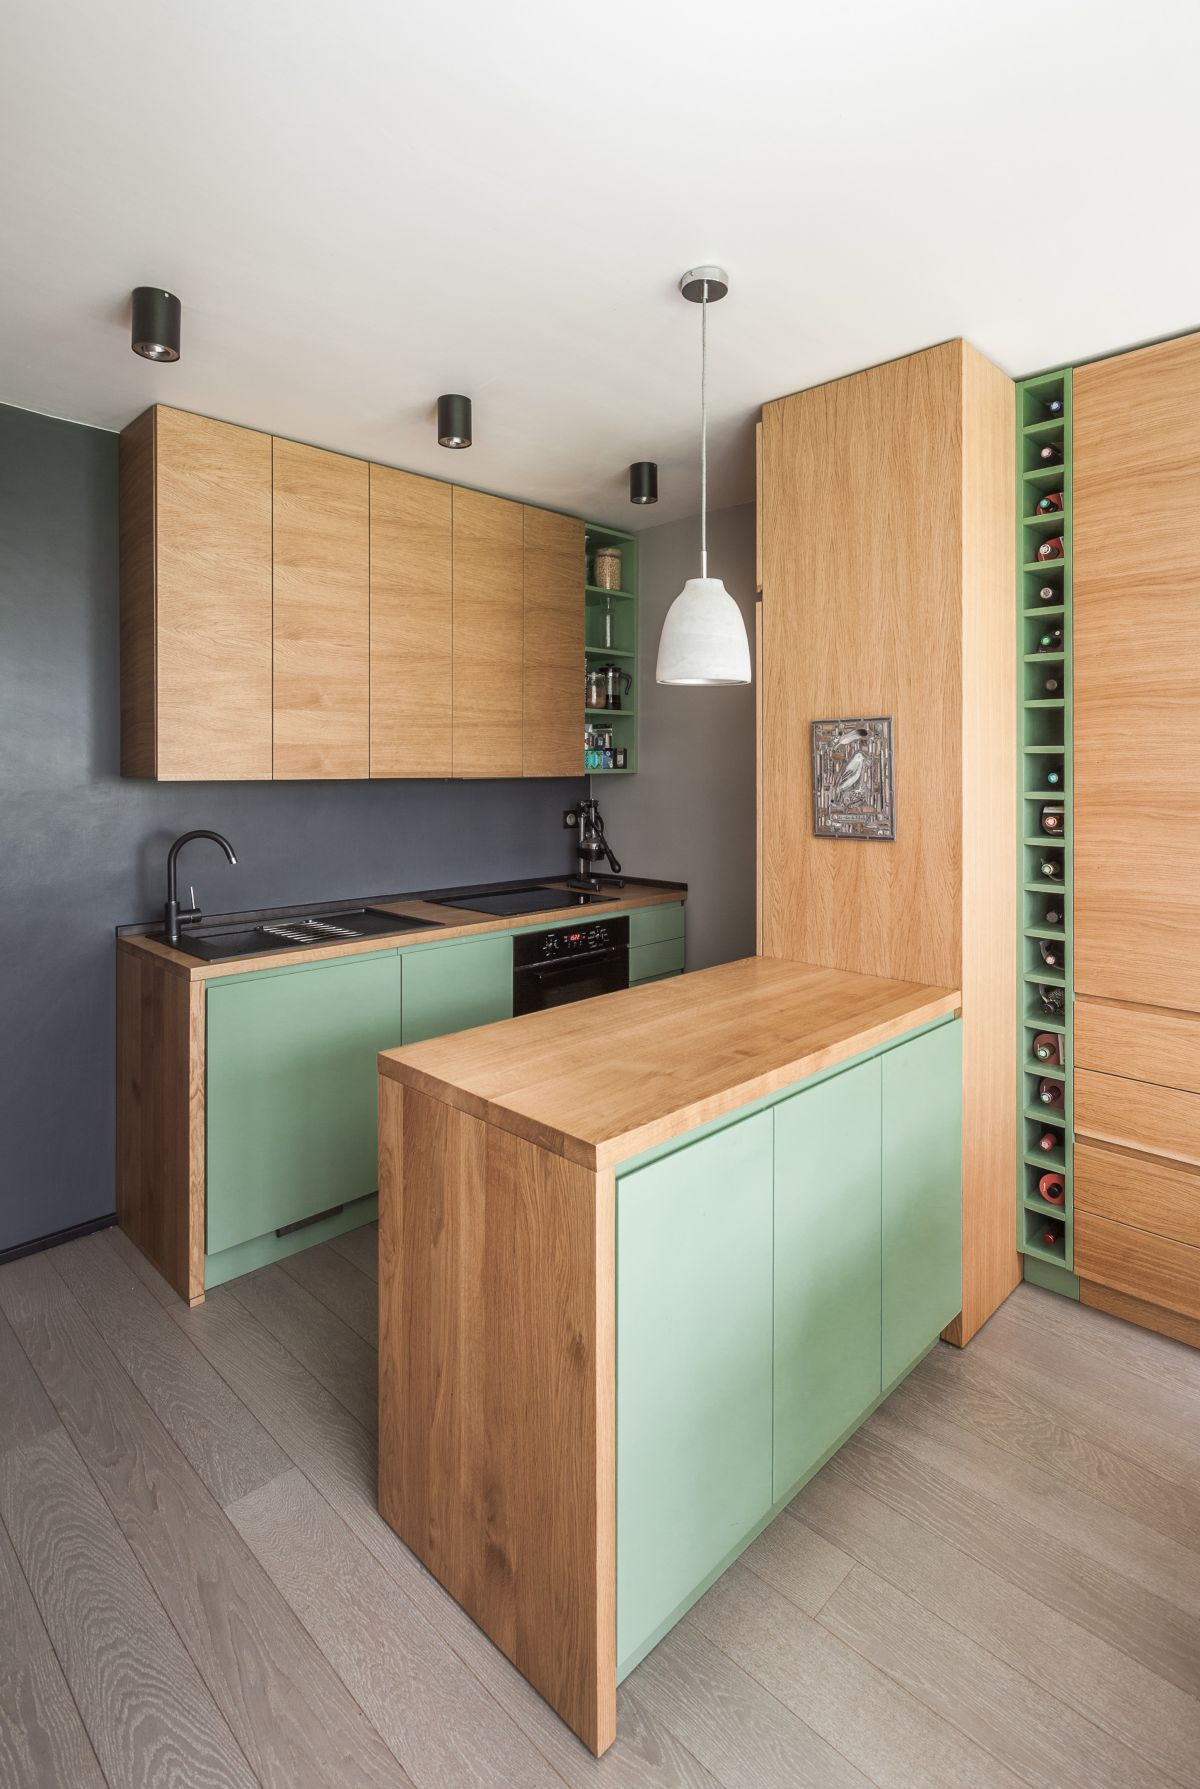 The kitchen features light colored cabinets and minty green doors   everything necessary is here